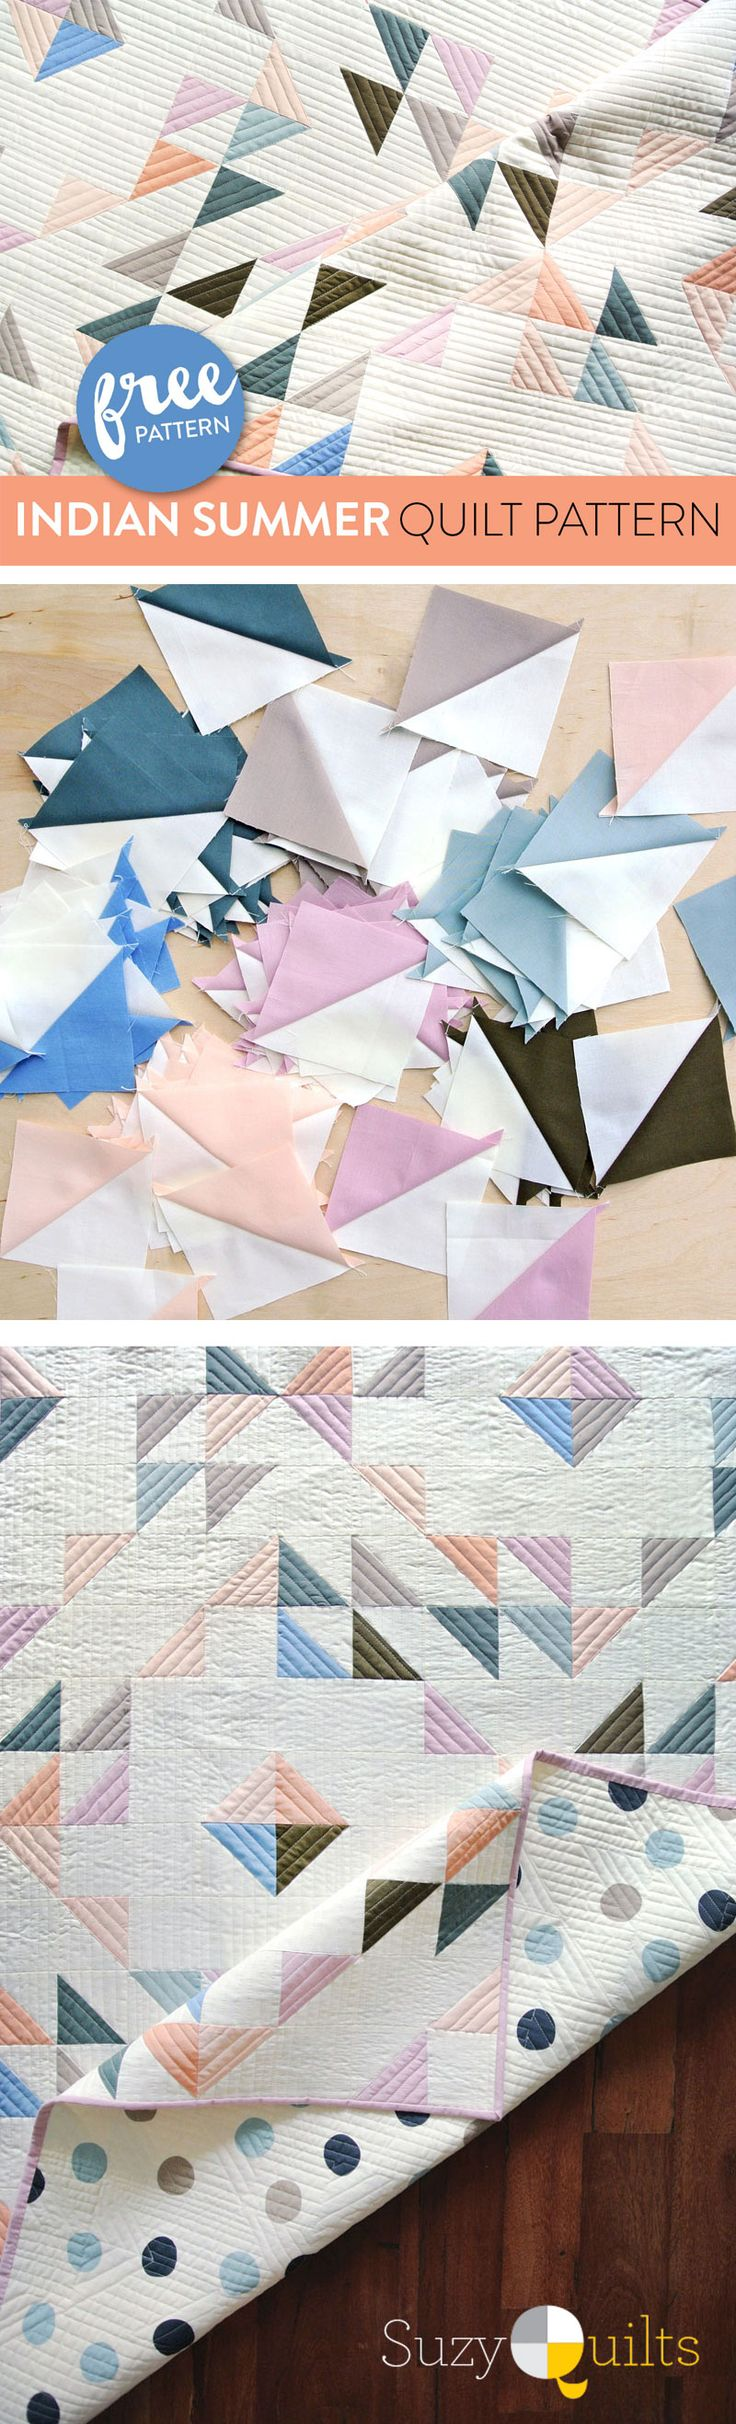 FREE simple, minimal modern quilt pattern. A great quilt pattern for a newbie quilter!